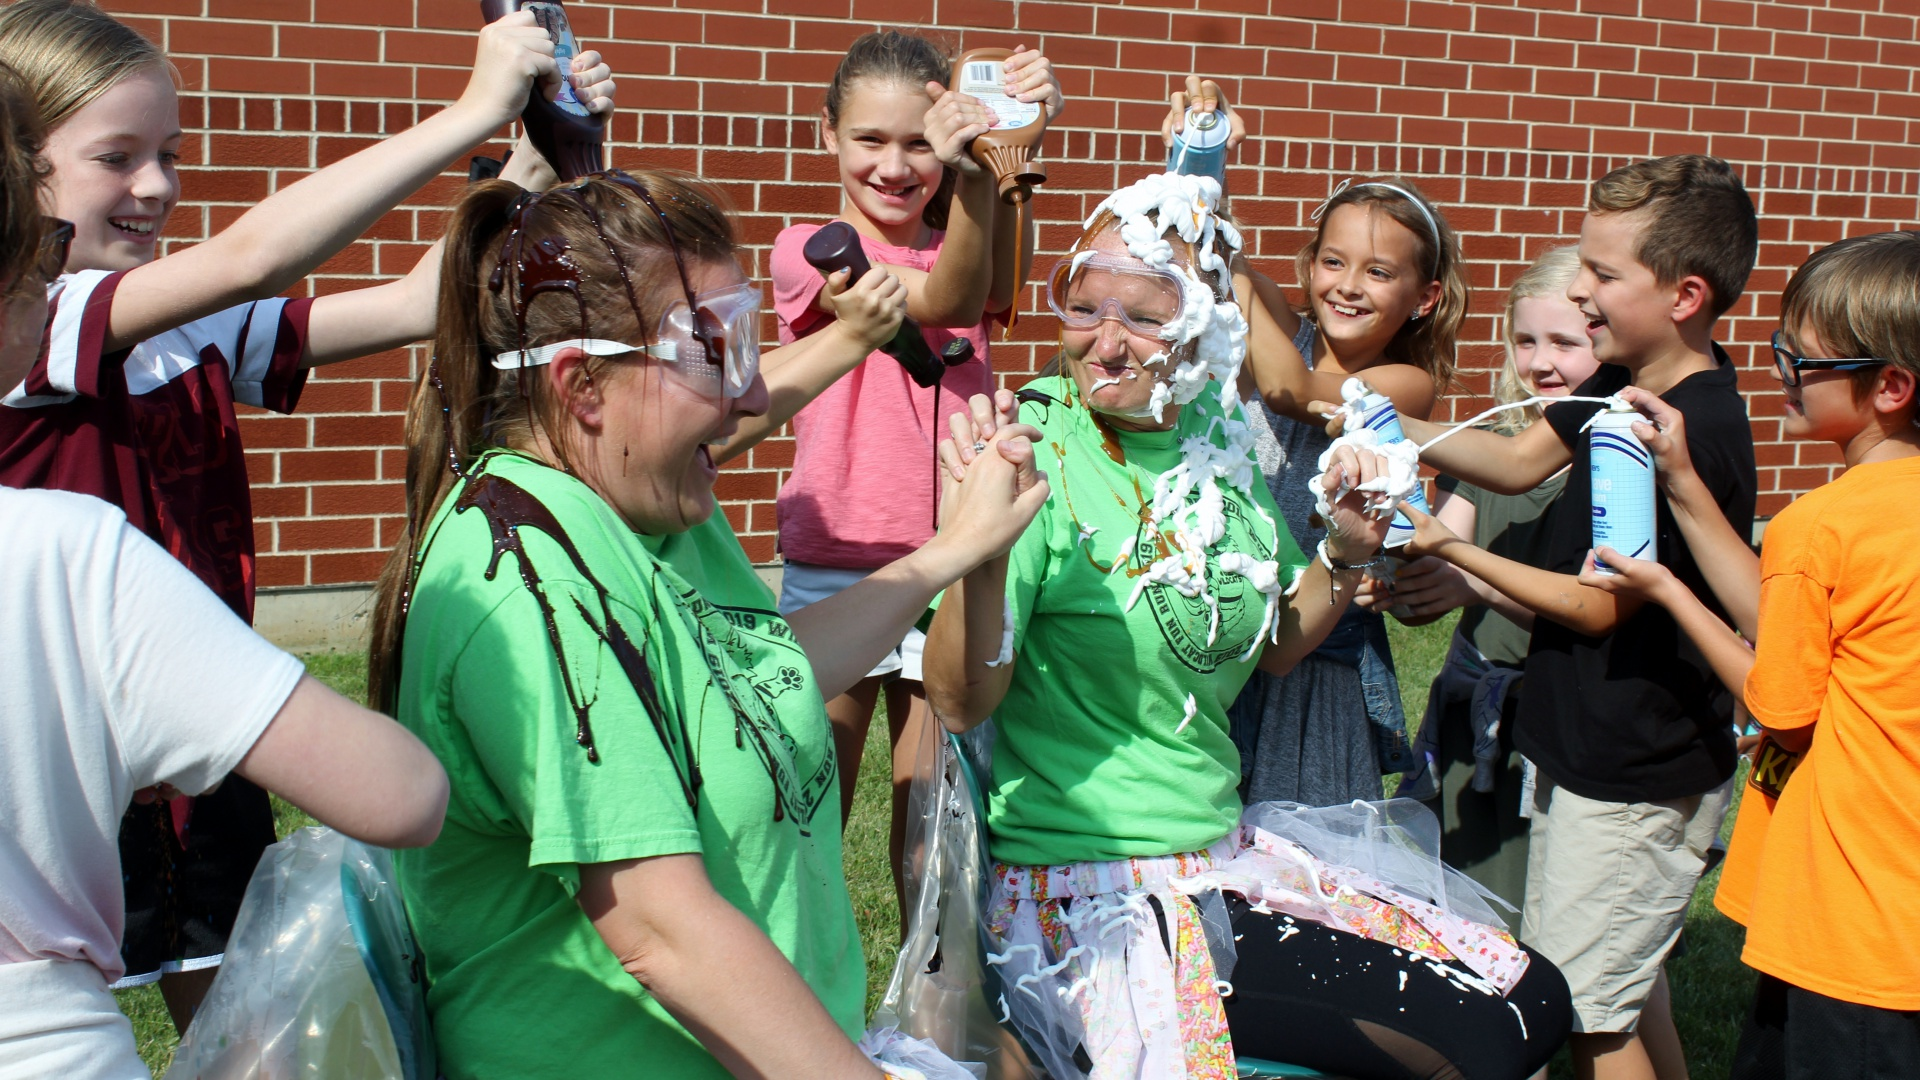 Principal Hennegan, Assistant Principal Gregoire become human sundaes for Boosterthon reward